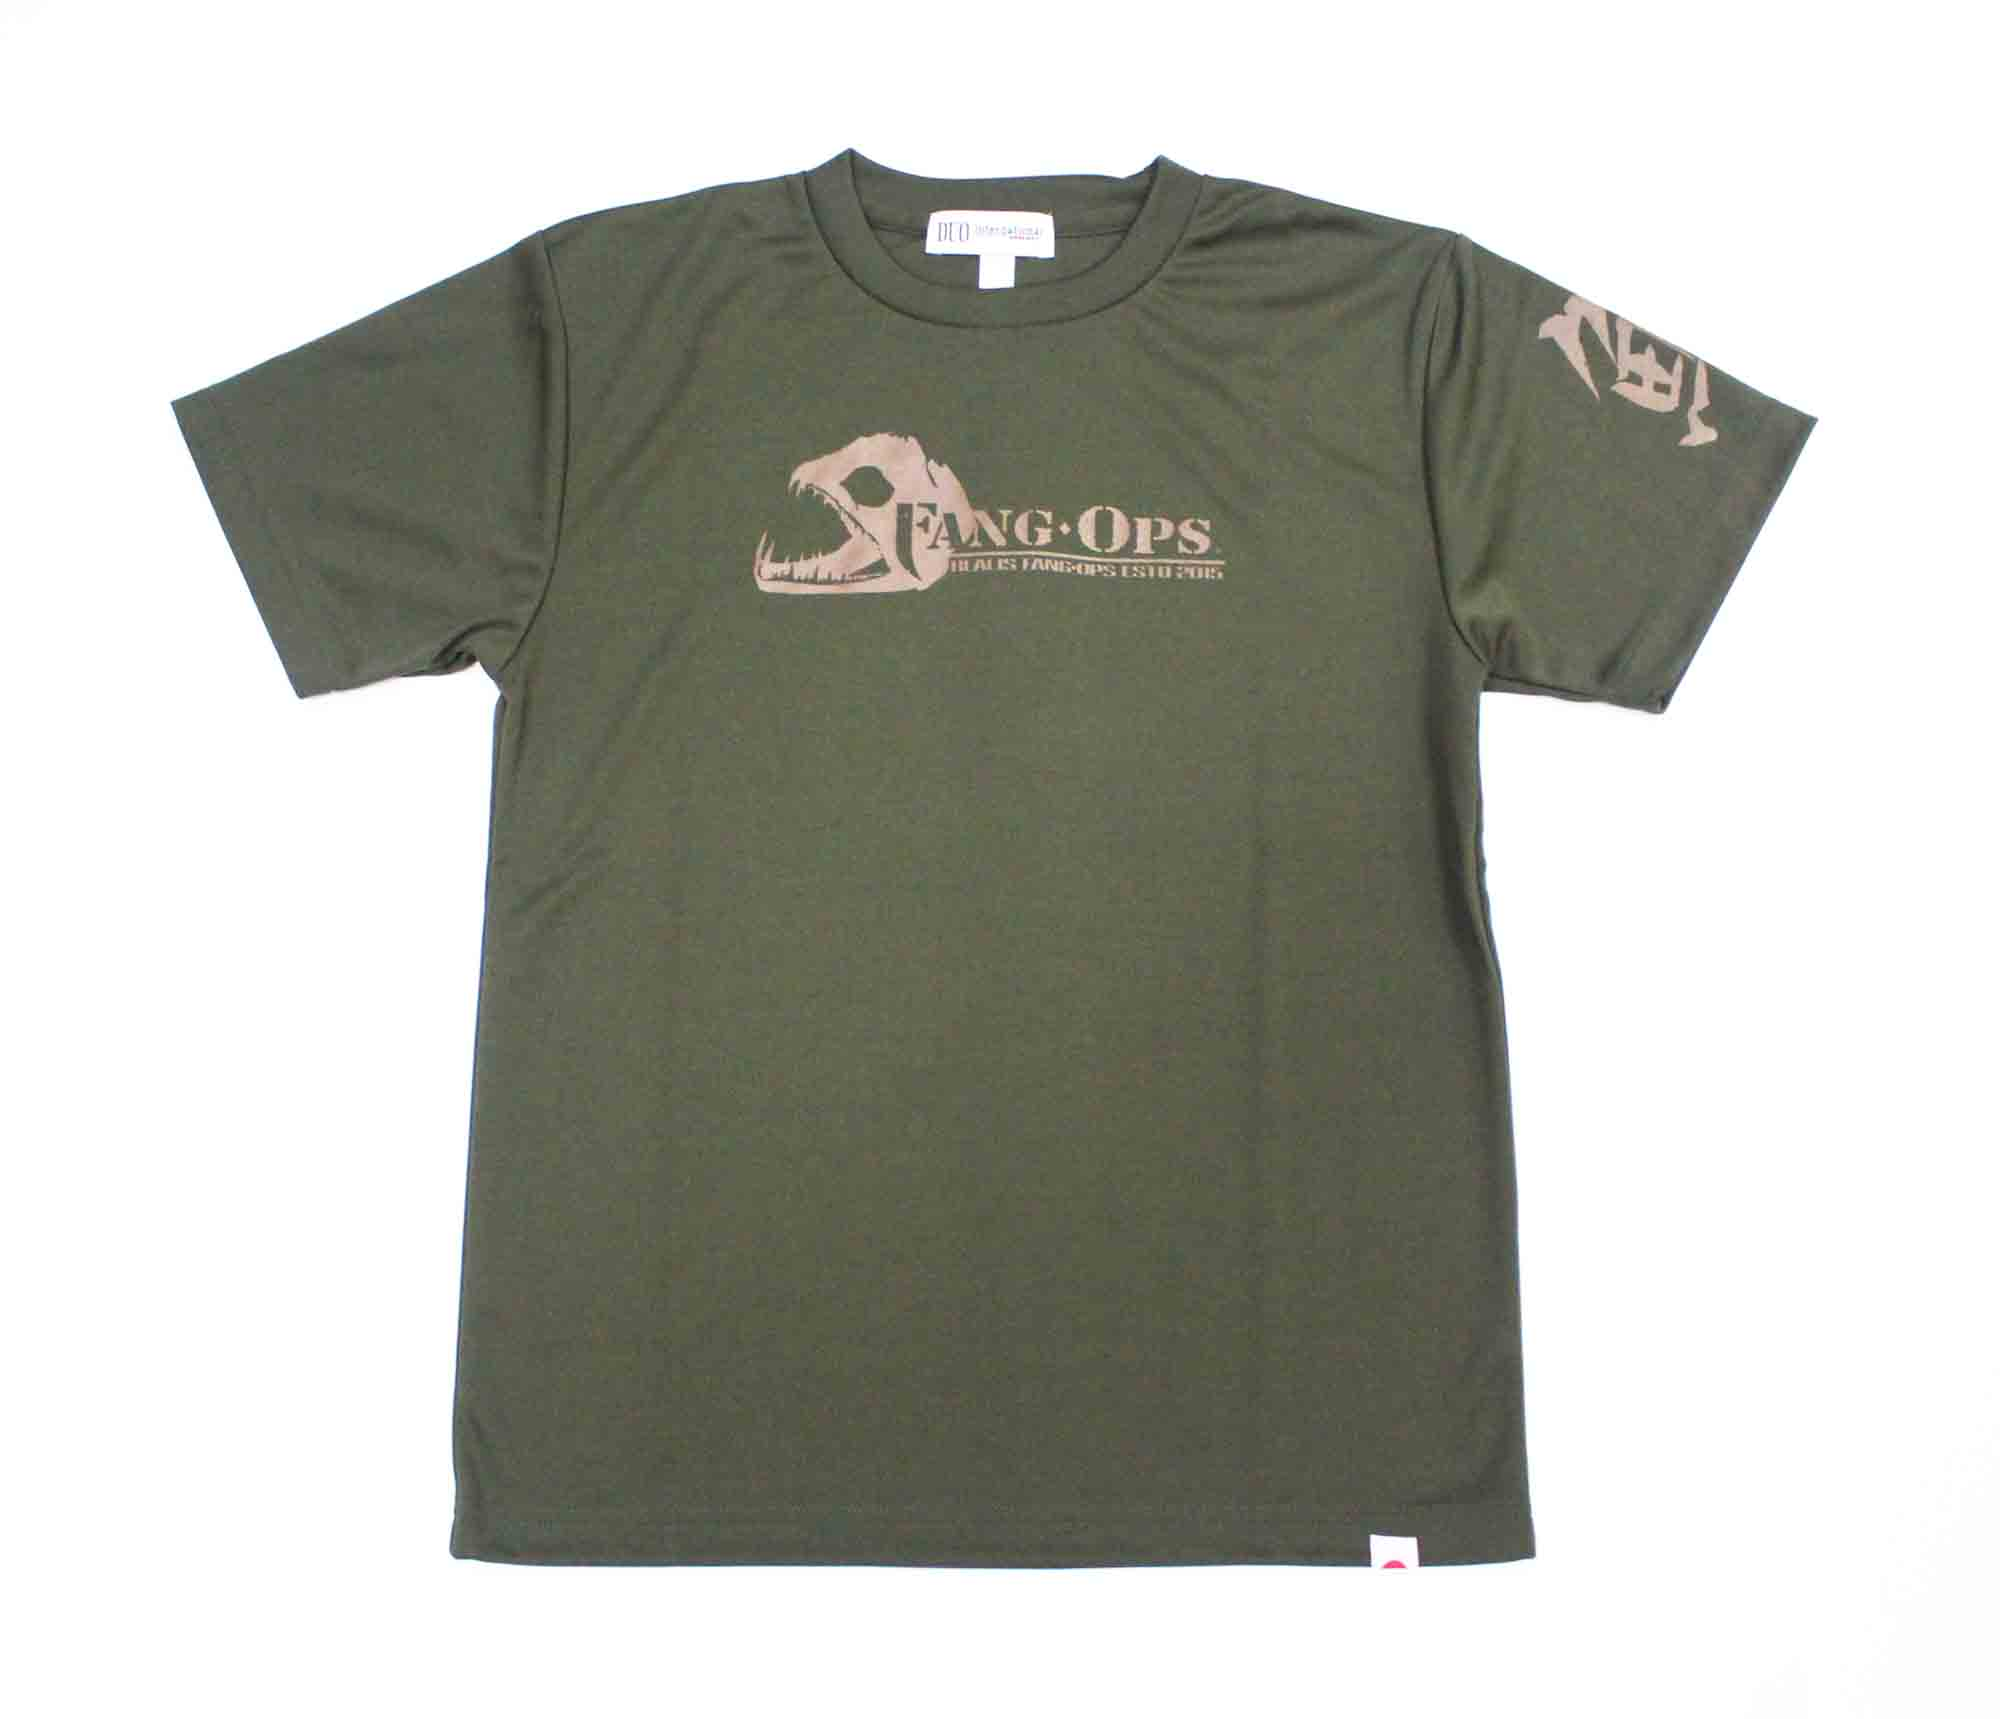 Duo T Shirt Fang Ops Beast Short Sleeve Dry Fit Army Green Size XL (1485)